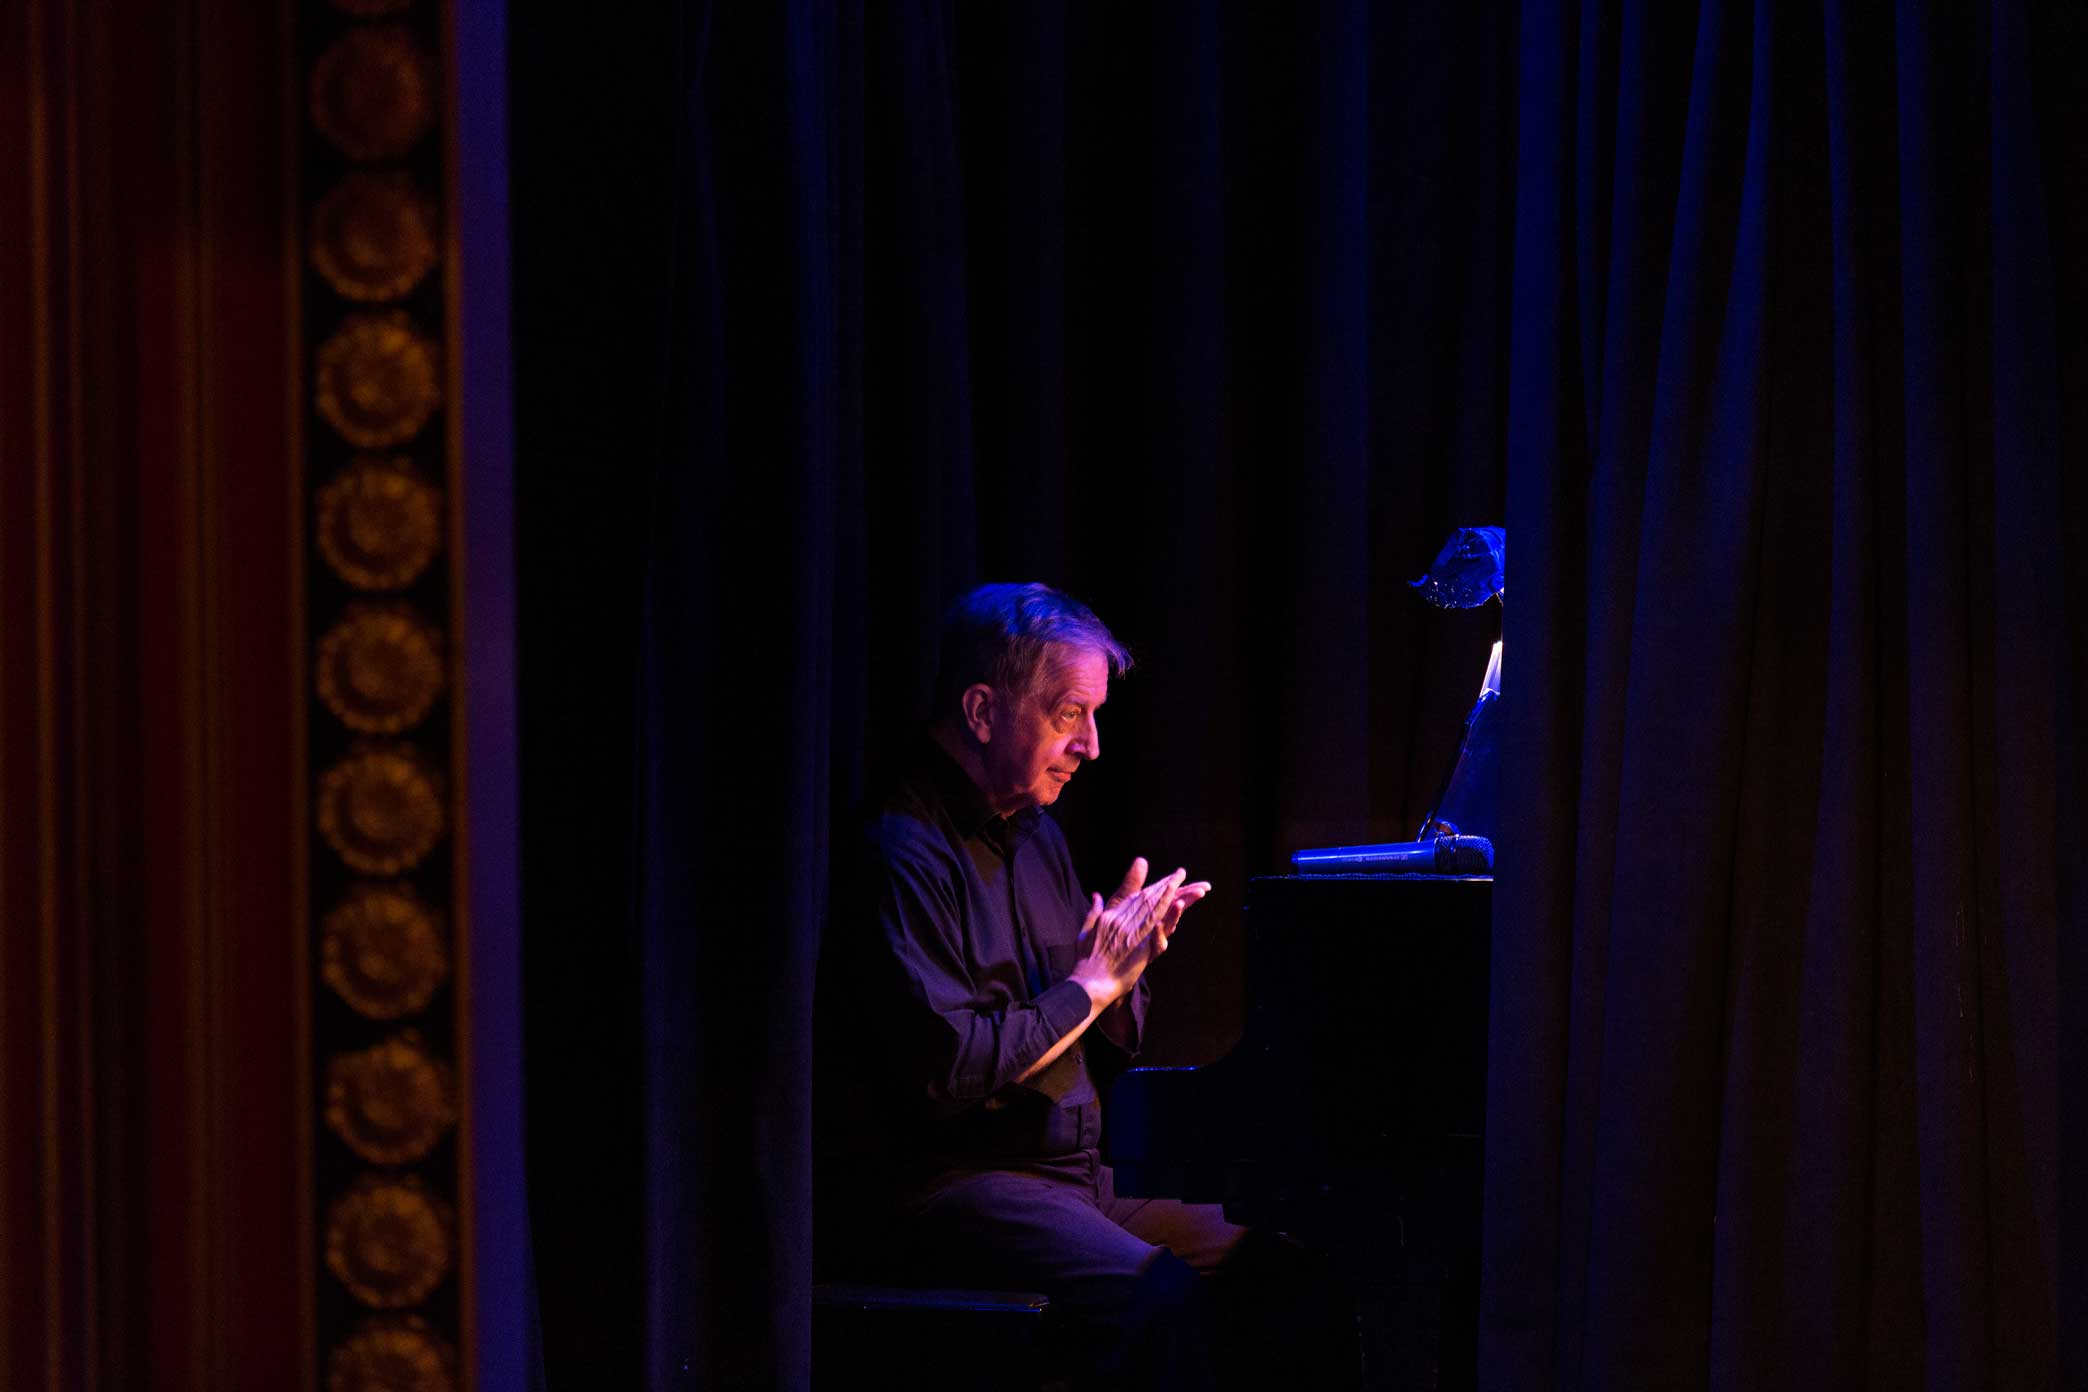 Musical Director, Fred Barton at thew piano before the start of Spamilton: An American parody and musical of the Broadway show Hamilton at The Triad in Manhattan.